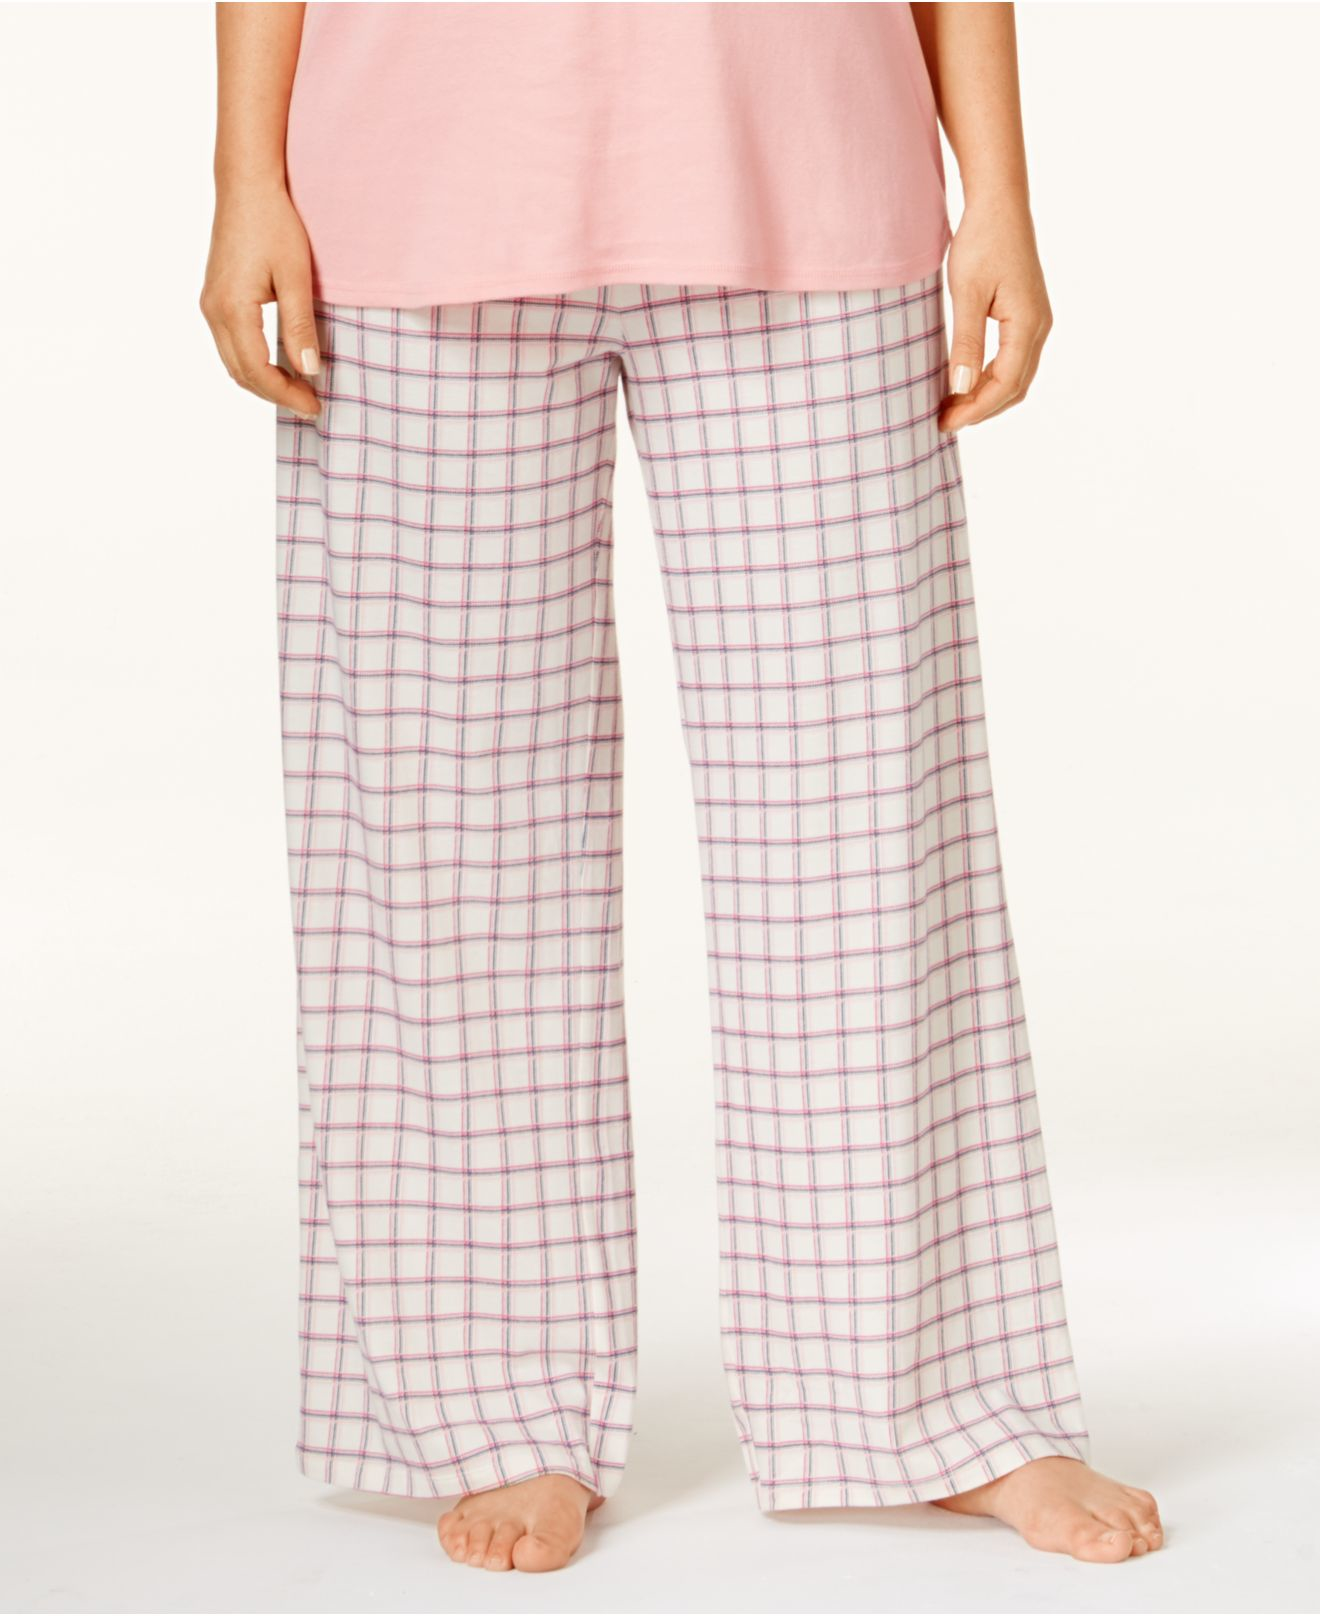 Tommy hilfiger Plus Size Pajama Pants in White | Lyst